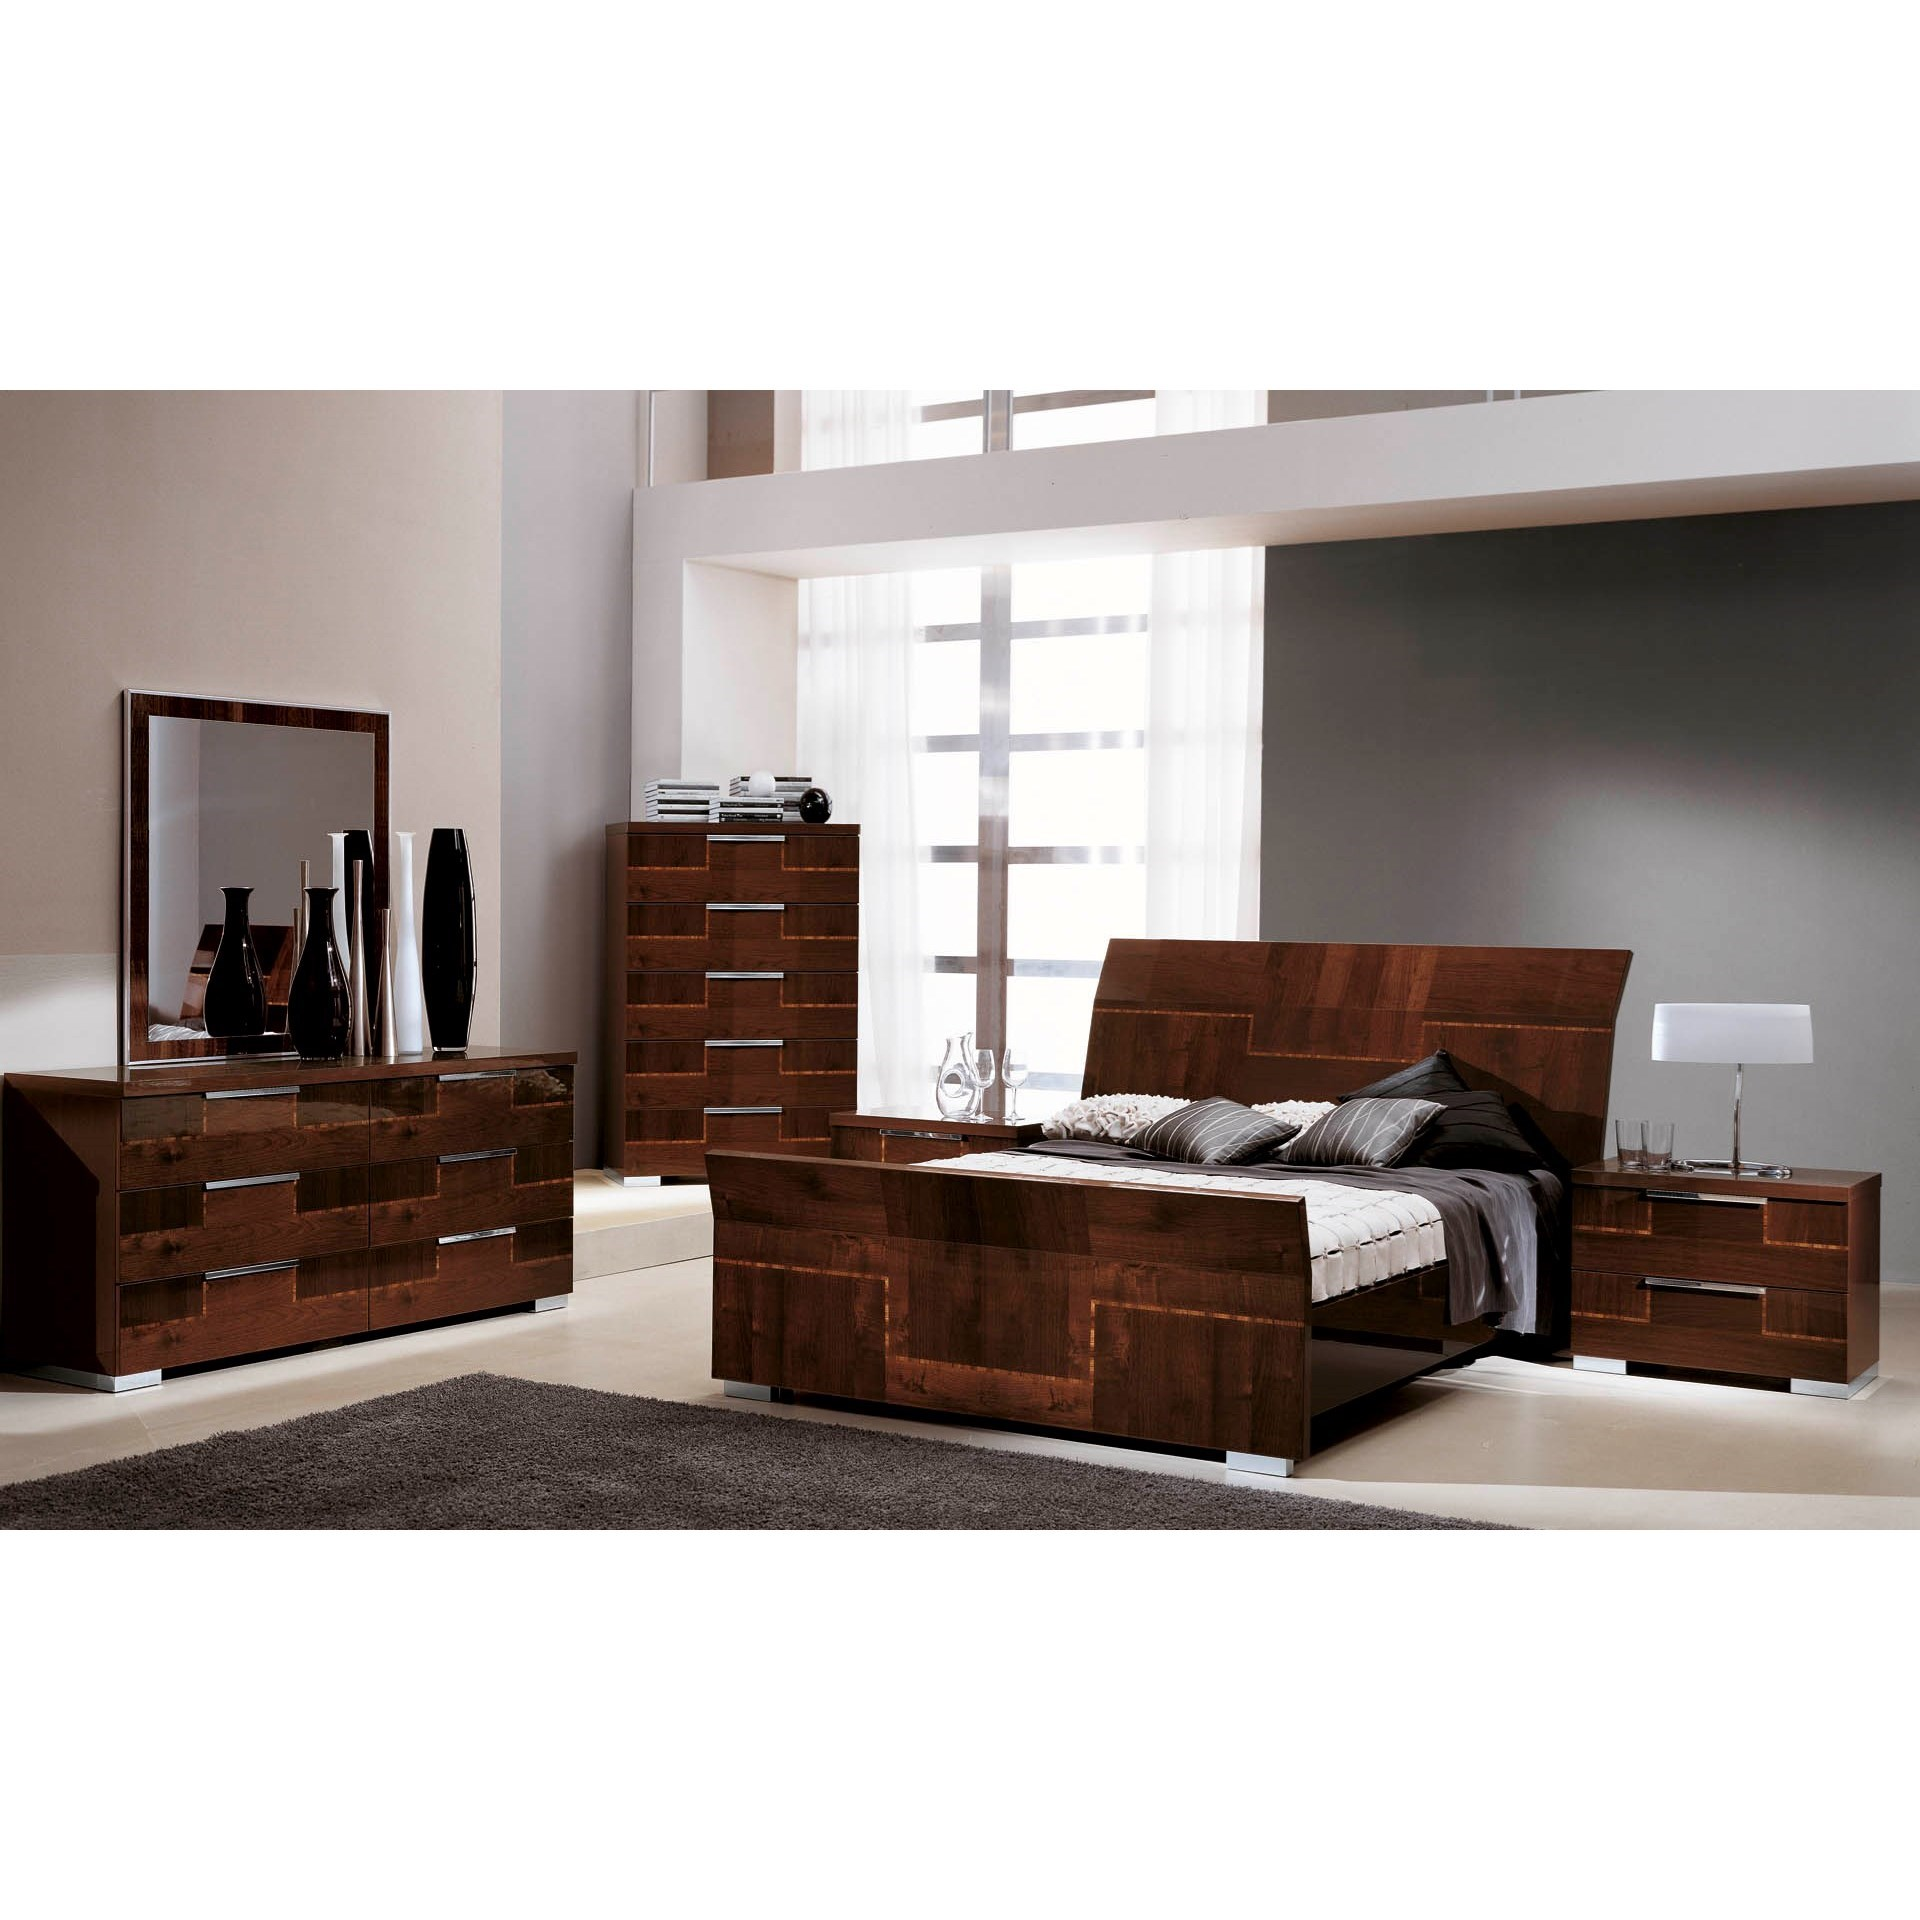 Pisa King Bedroom Group by Alf Italia at Corner Furniture